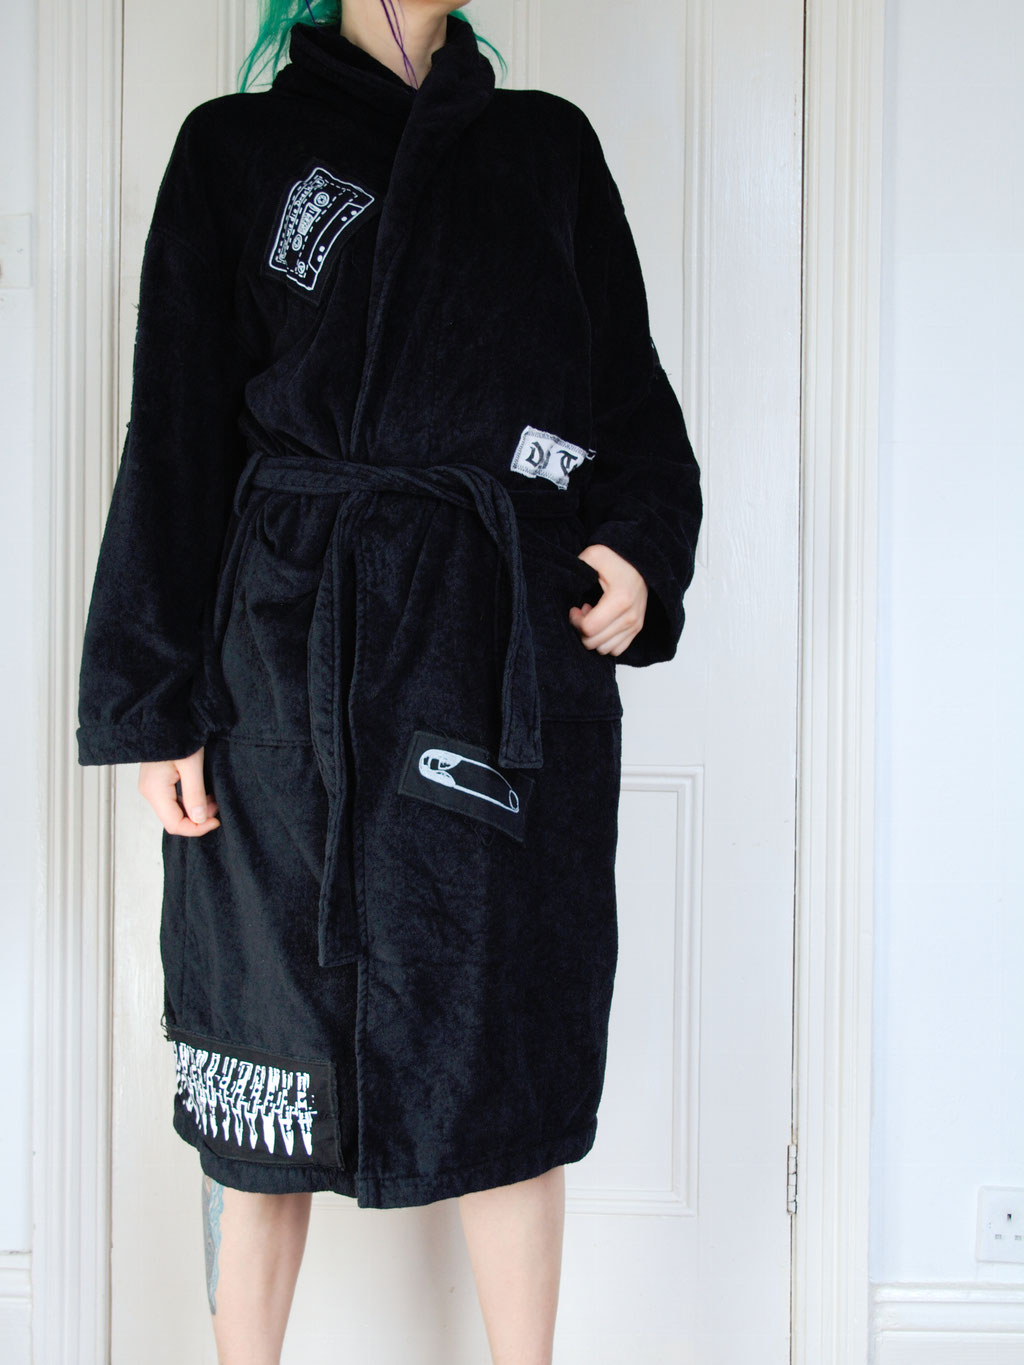 5 Unusual things that look better with patches - crust punk bathrobe front - Zebraspider Eco Anti-Fashion Blog